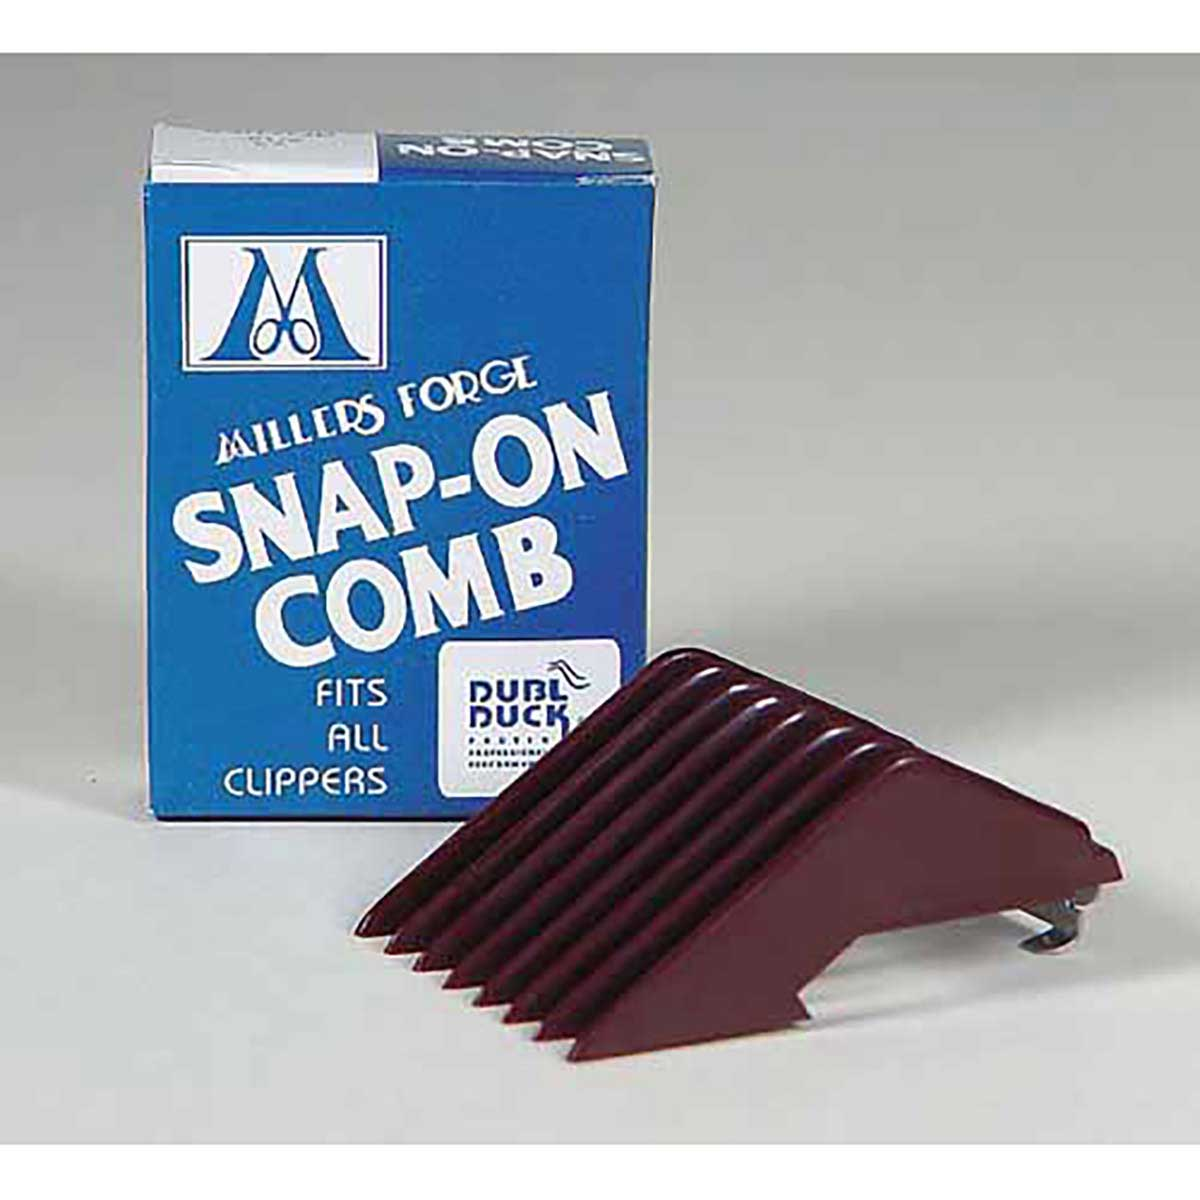 Millers Forge Snap-On Comb for Clippers - Size 2 Cuts 3/8 inch